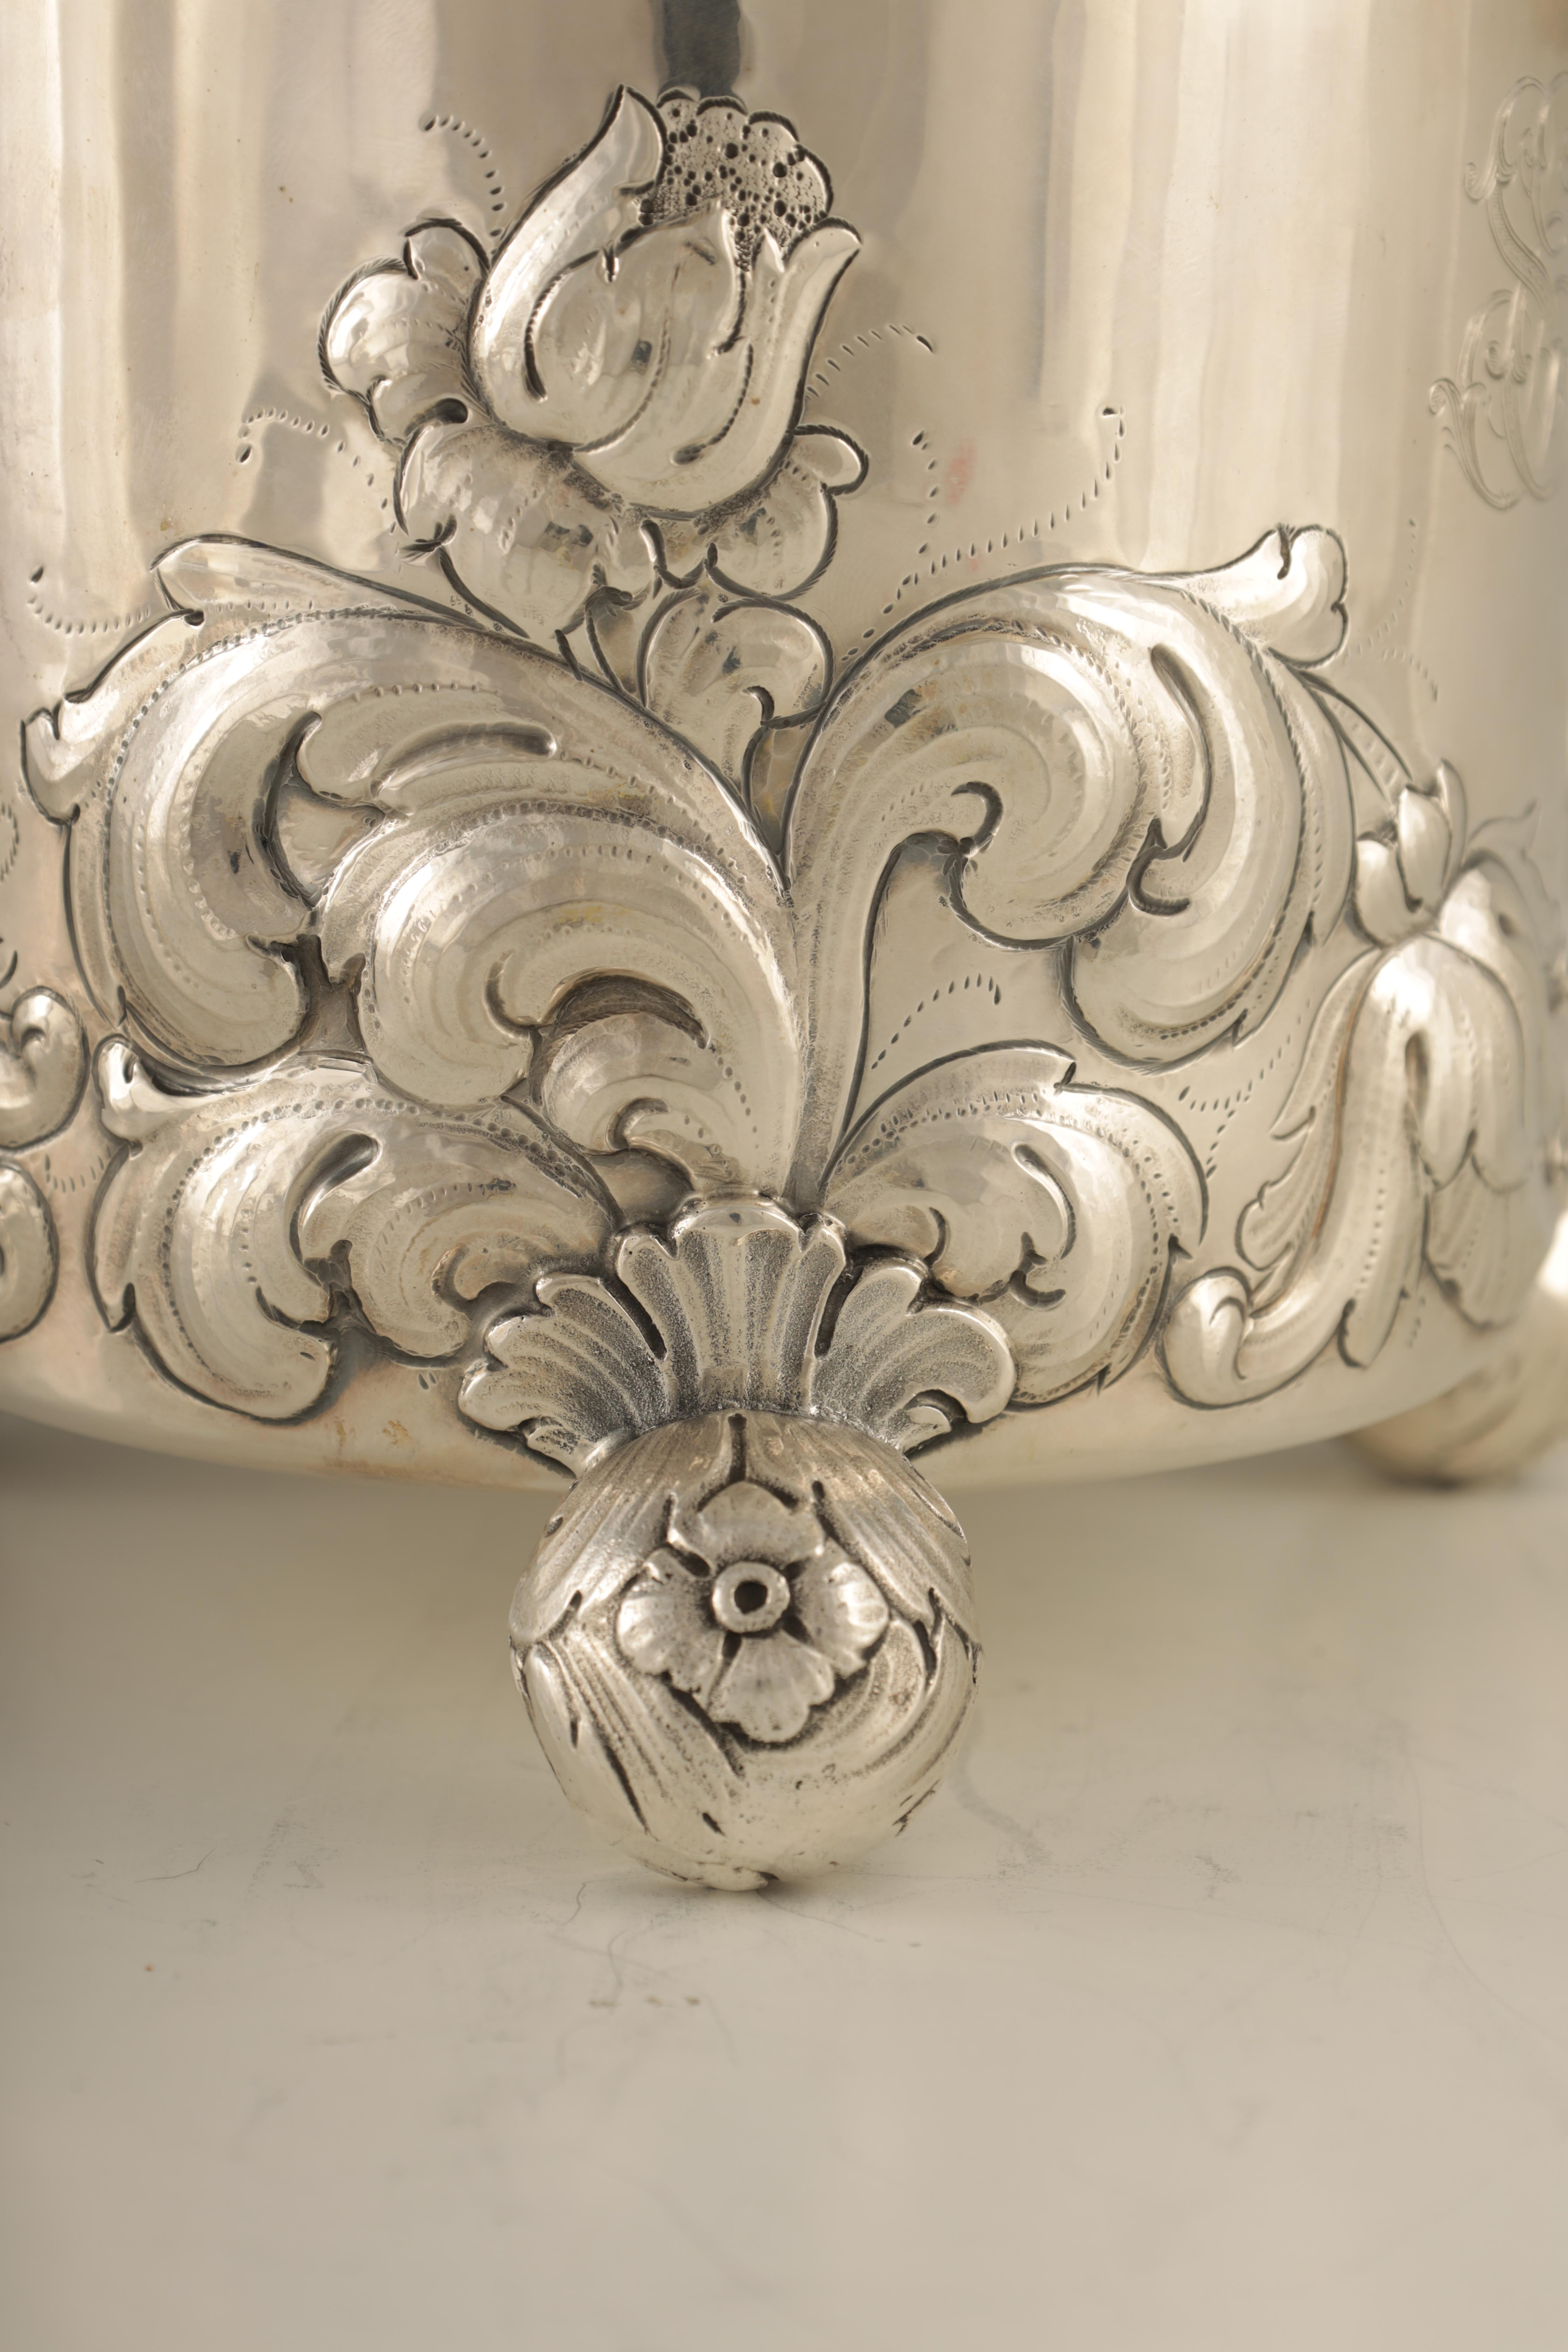 AN IMPRESSIVE EARLY 20TH CENTURY SWEDISH SILVER TANKARD with embossed ball finial to the hinged - Image 2 of 8